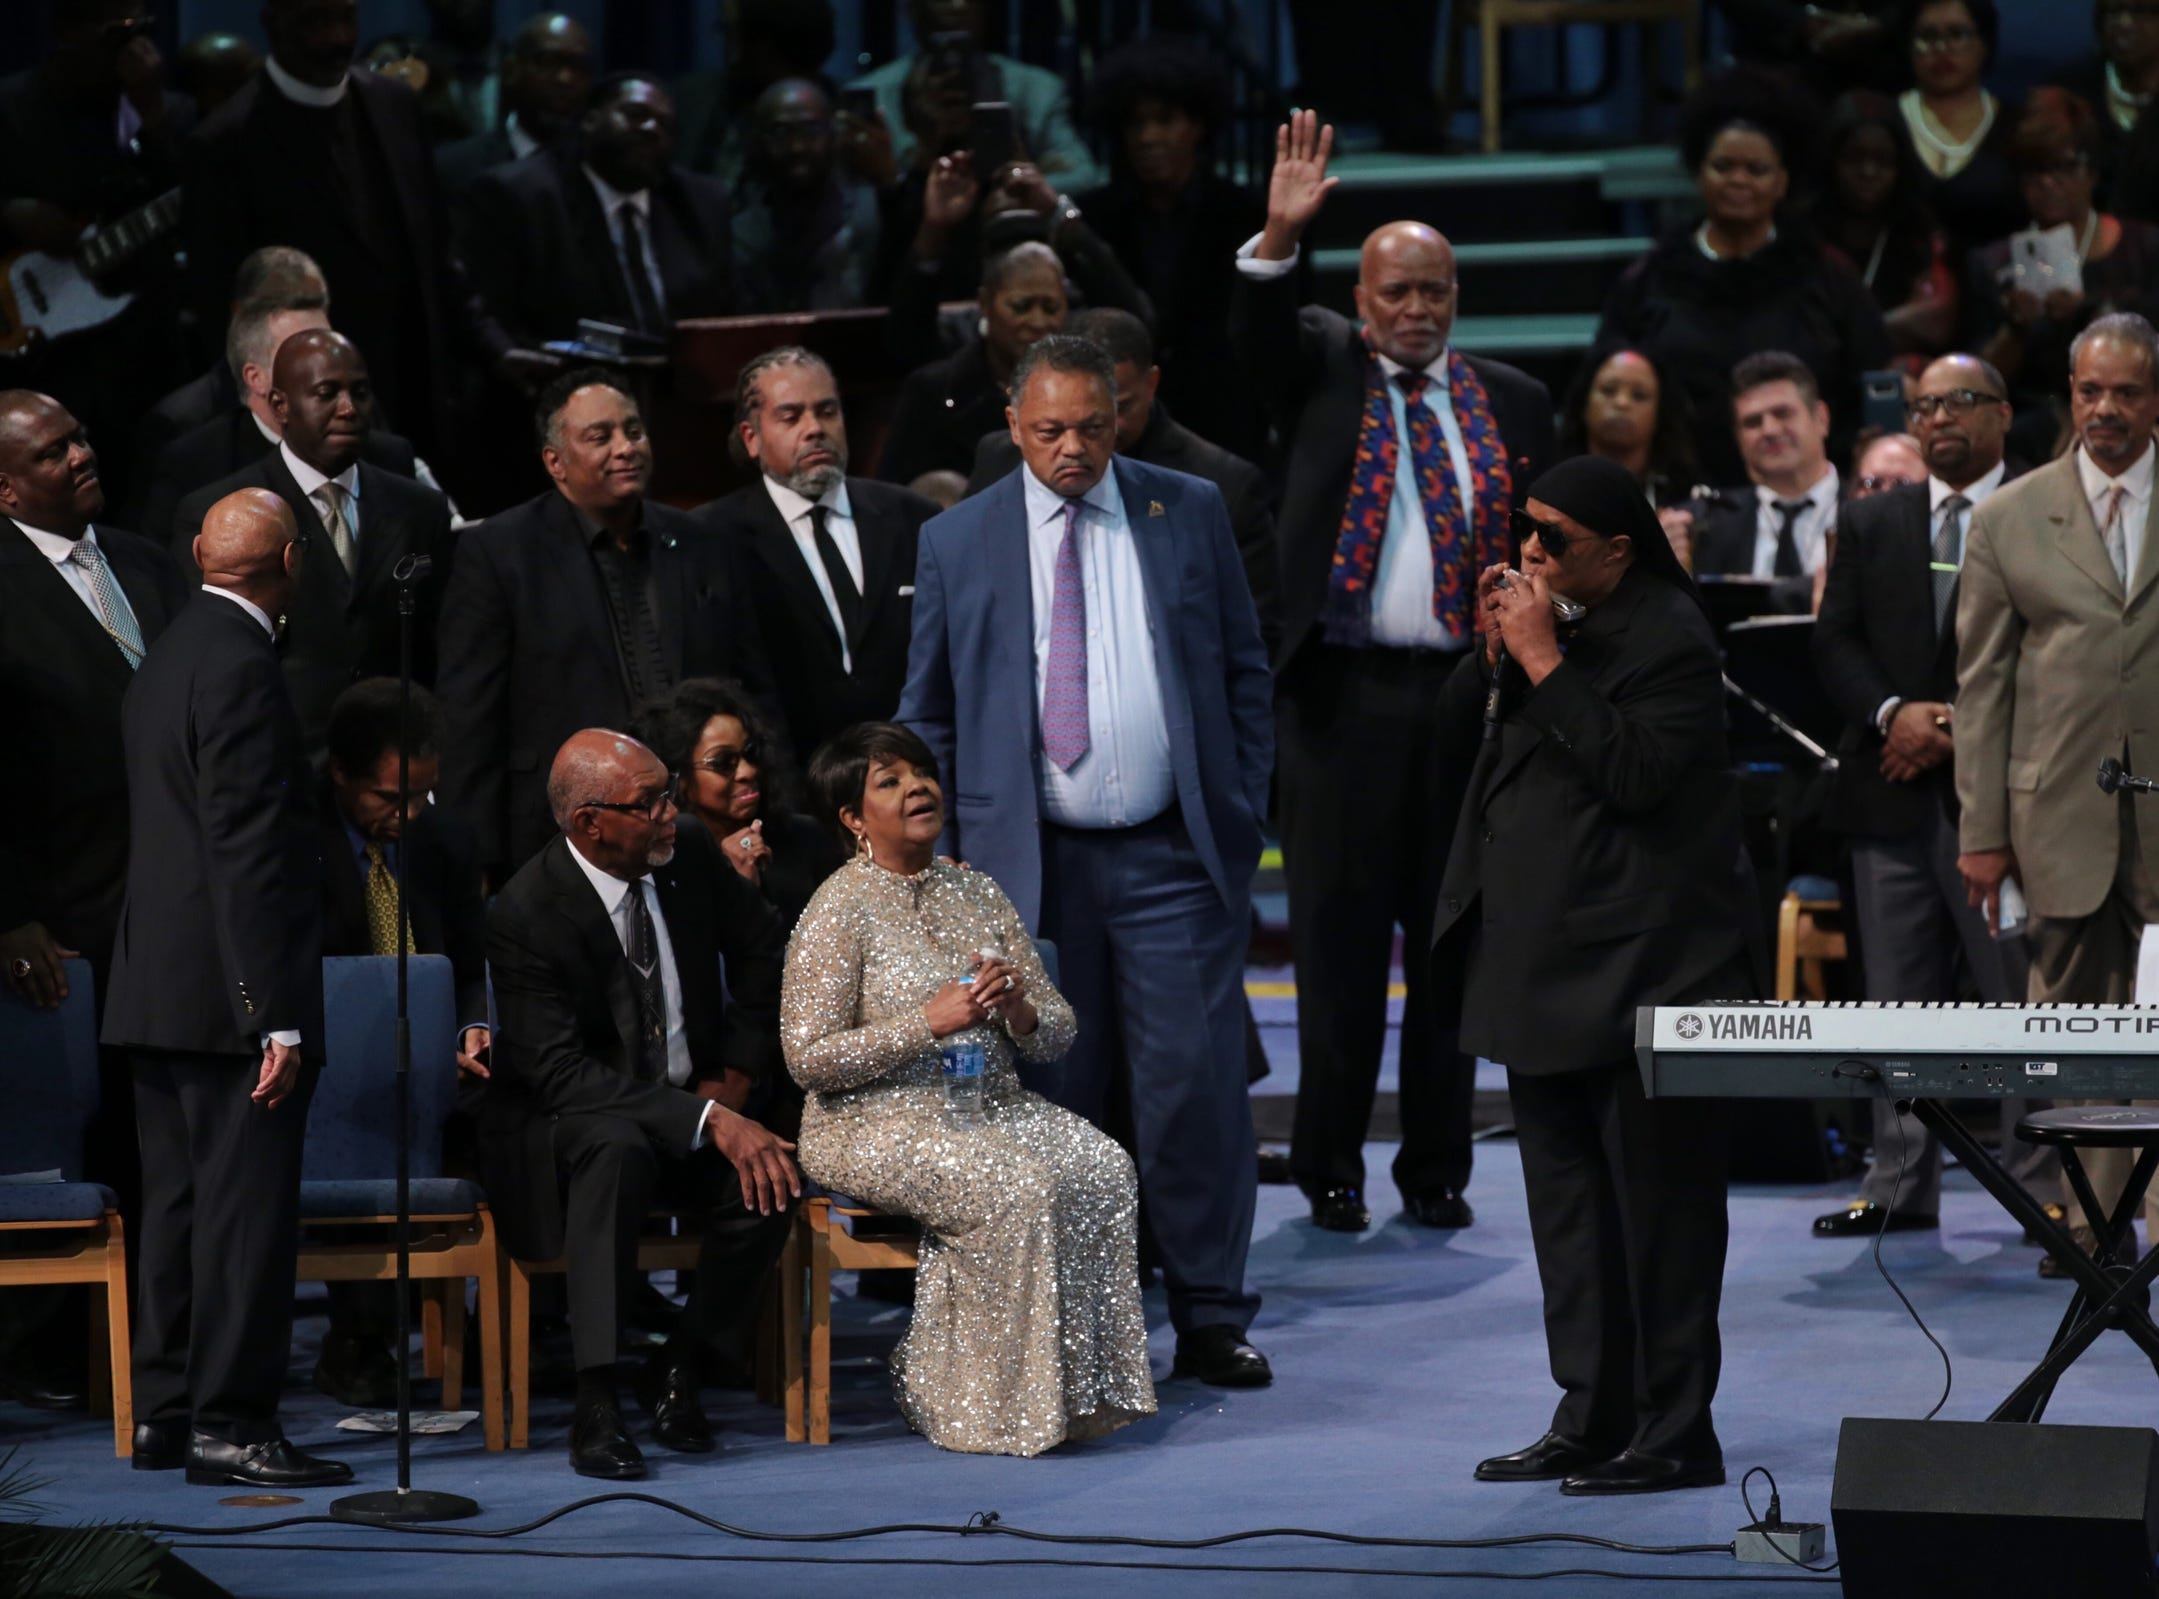 Stevie  Wonder  performs at the end of the funeral for the late Aretha Franklin at Greater Grace Temple in Detroit on Friday, August 31, 2018.